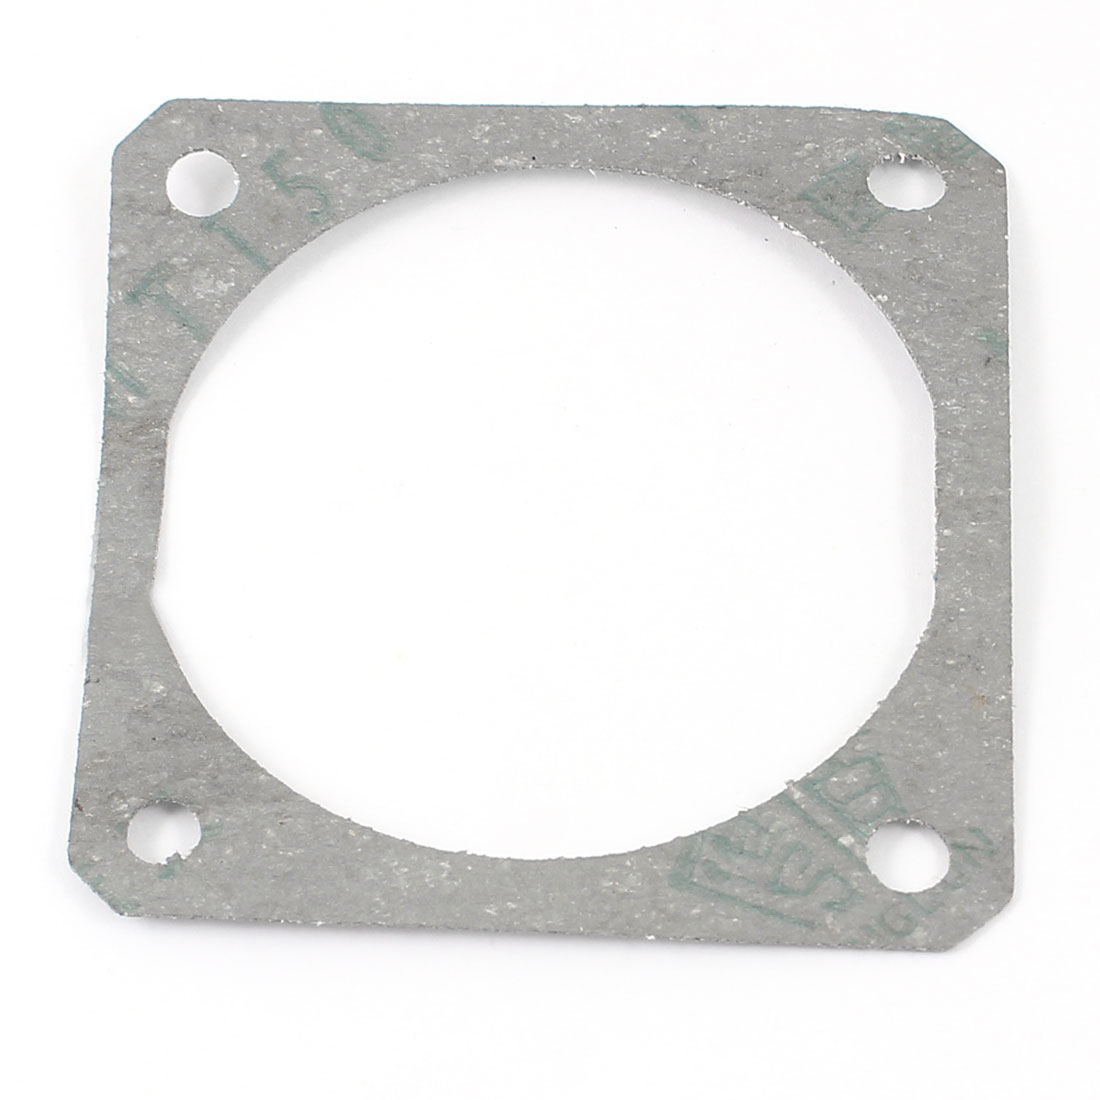 Chainsaw Intake Gasket Diaphragm for 45/52/58 Chain Saw